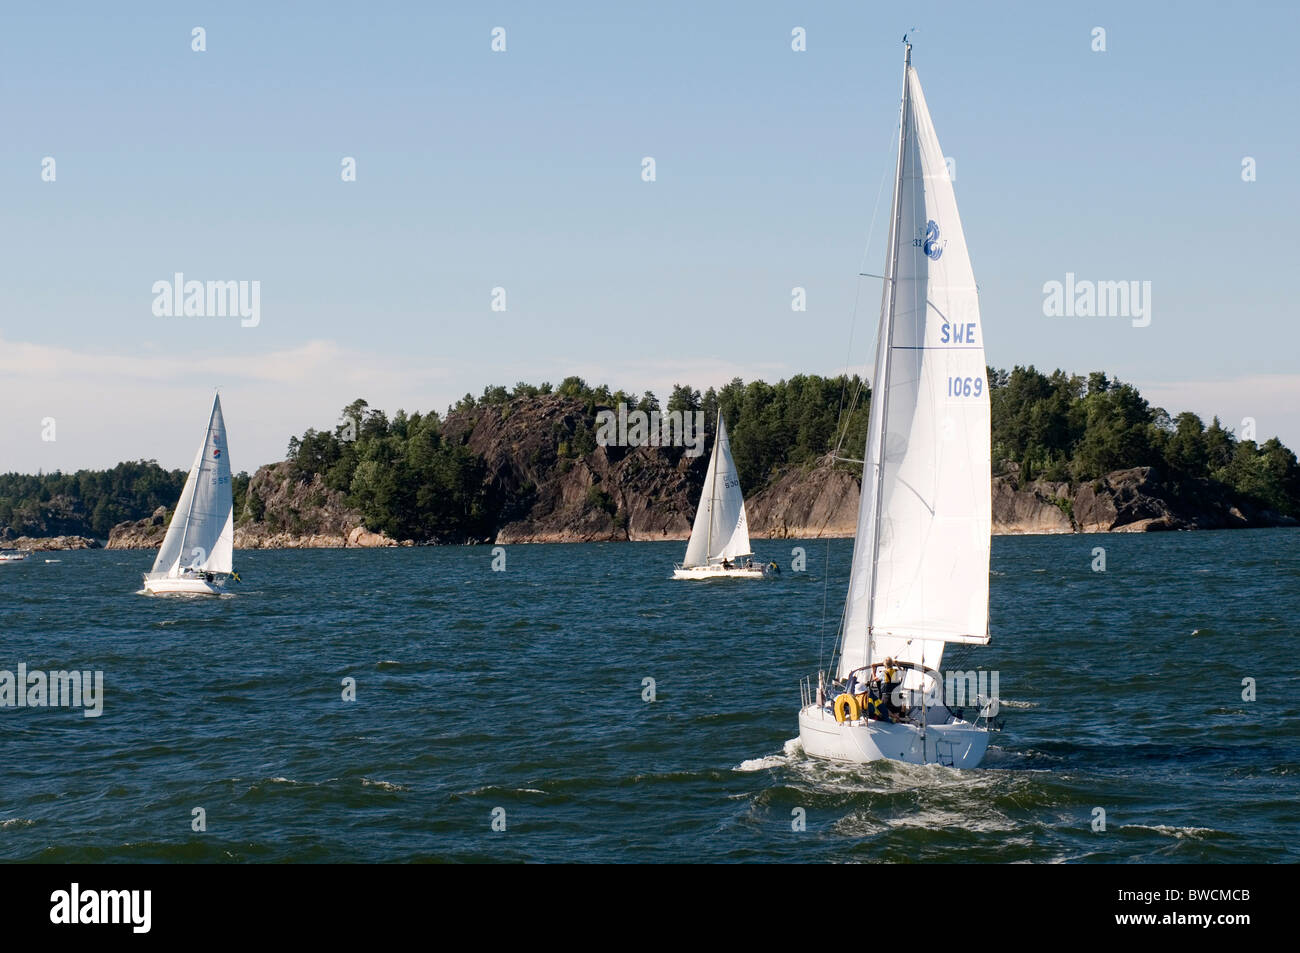 sailing boats boat in the stockholm archepeligos archepeligos archepeligo archepeligo yacht yachting sail sails - Stock Image